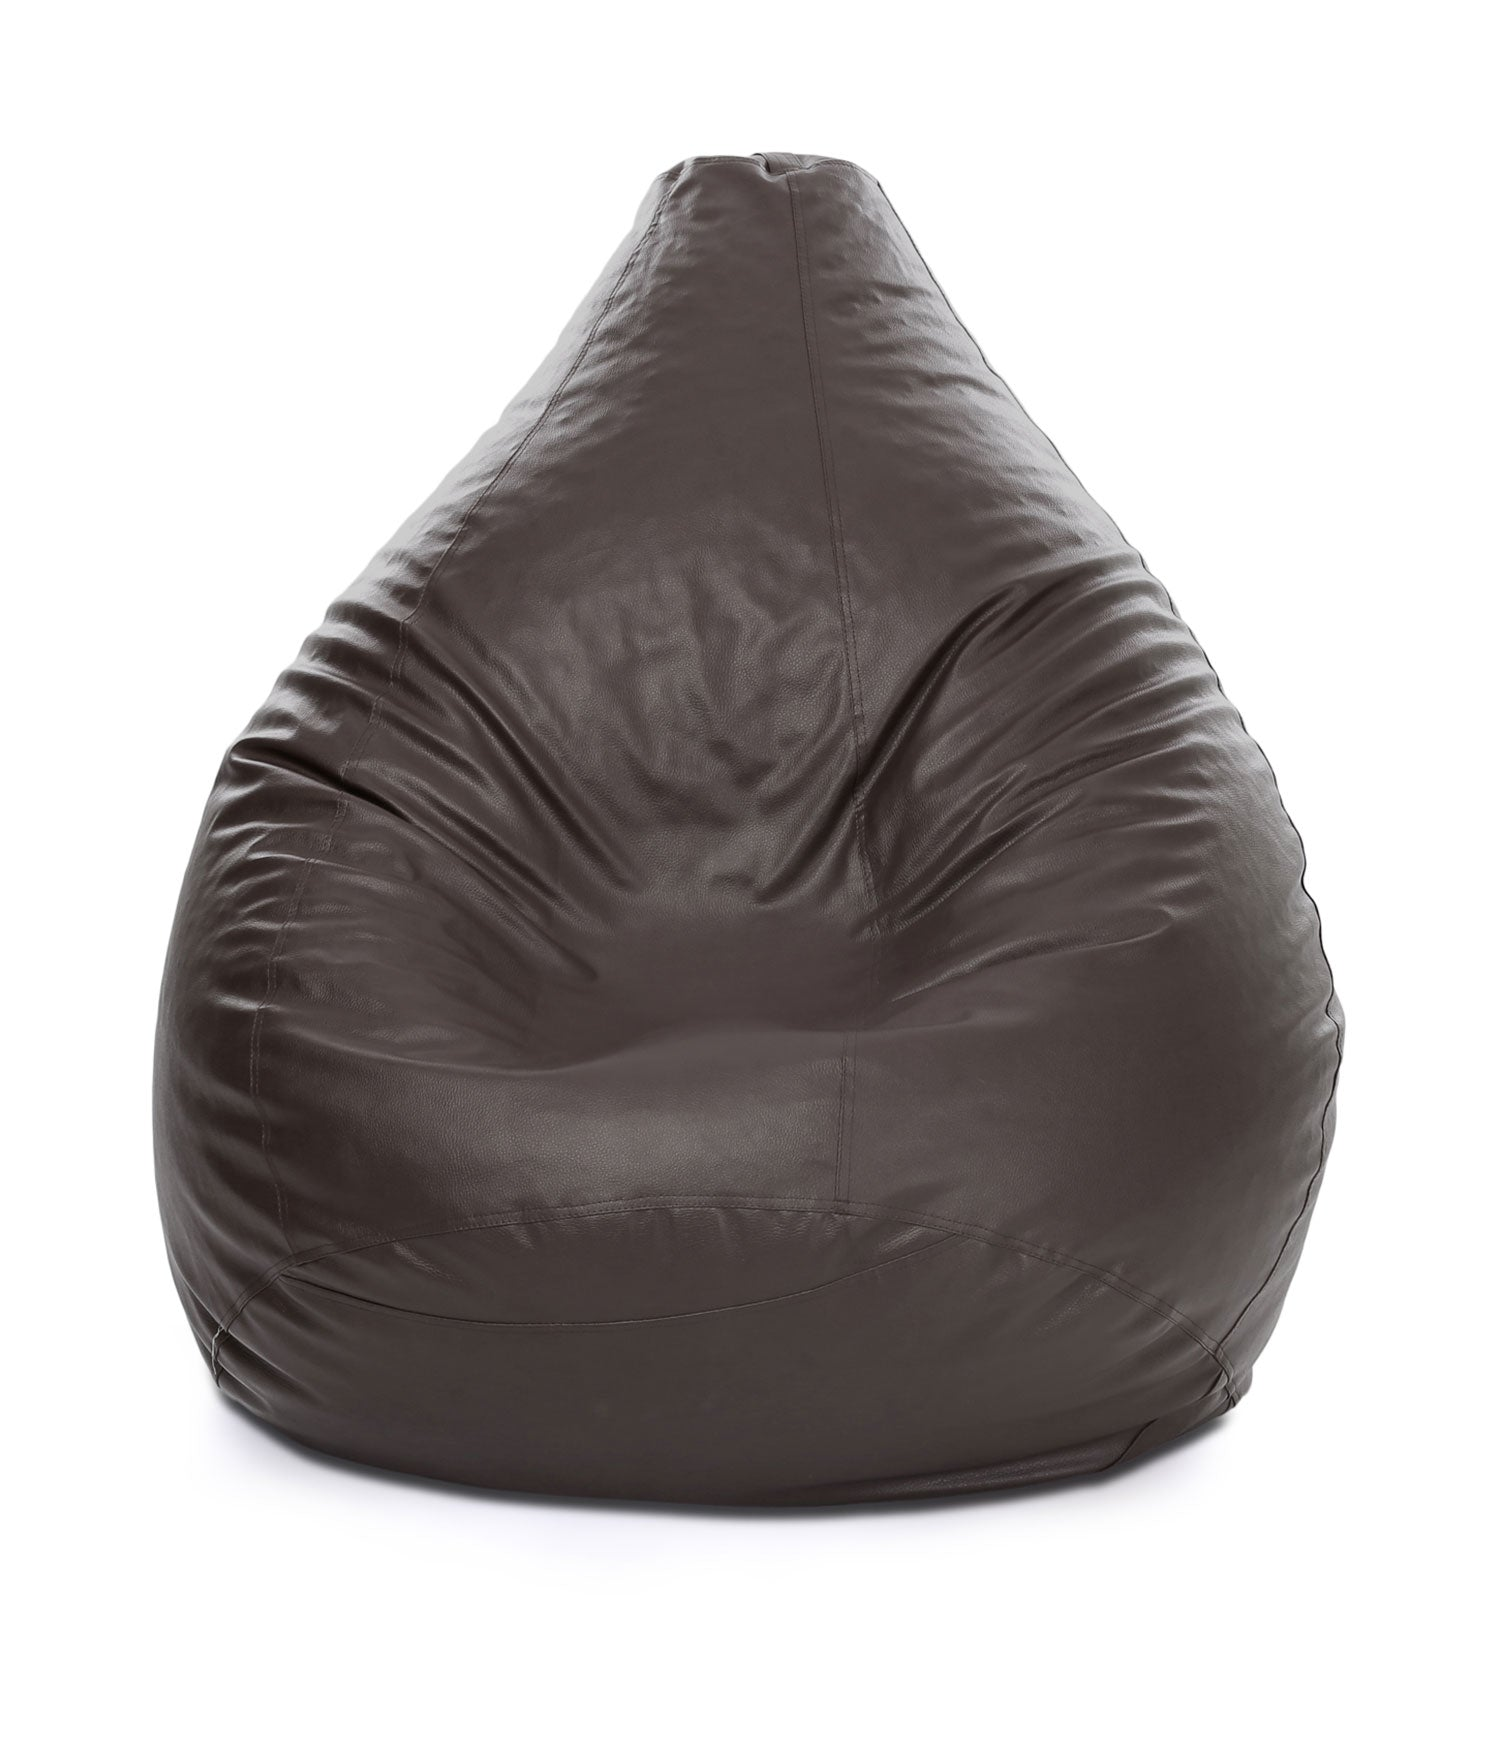 Remarkable Chocolate Brown Xxxl Classic Bean Bag Cover Without Fillers Theyellowbook Wood Chair Design Ideas Theyellowbookinfo